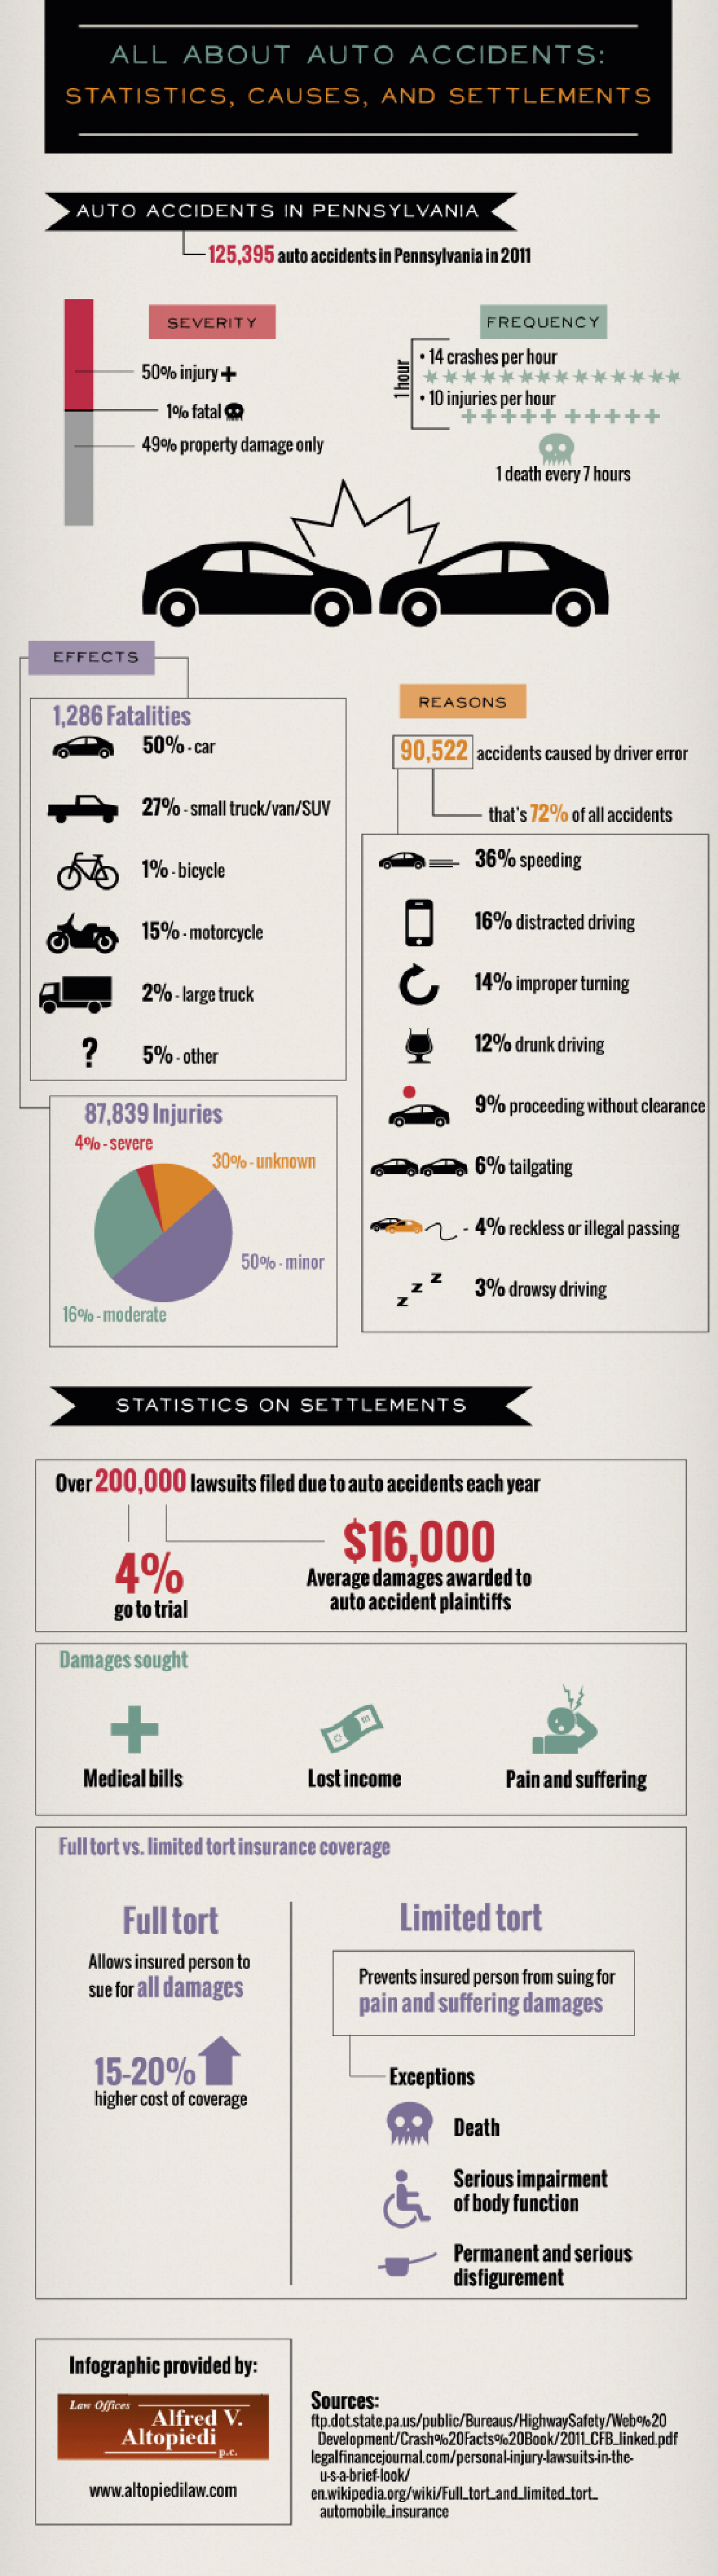 All About Auto Accidents Infographic